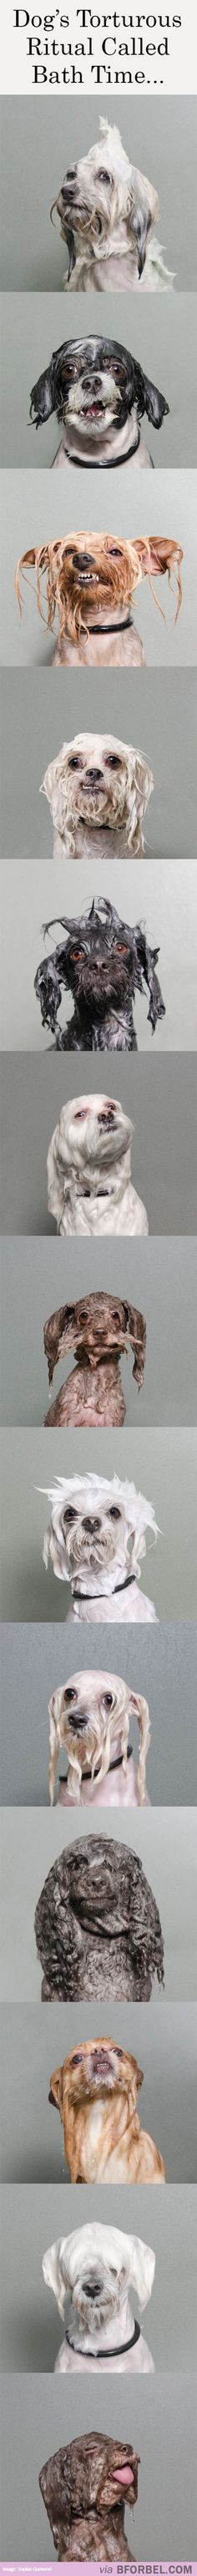 Some call it torture. We call it ... grooming! 13 Dogs Face A Torturous Ritual Called… Bath Time!